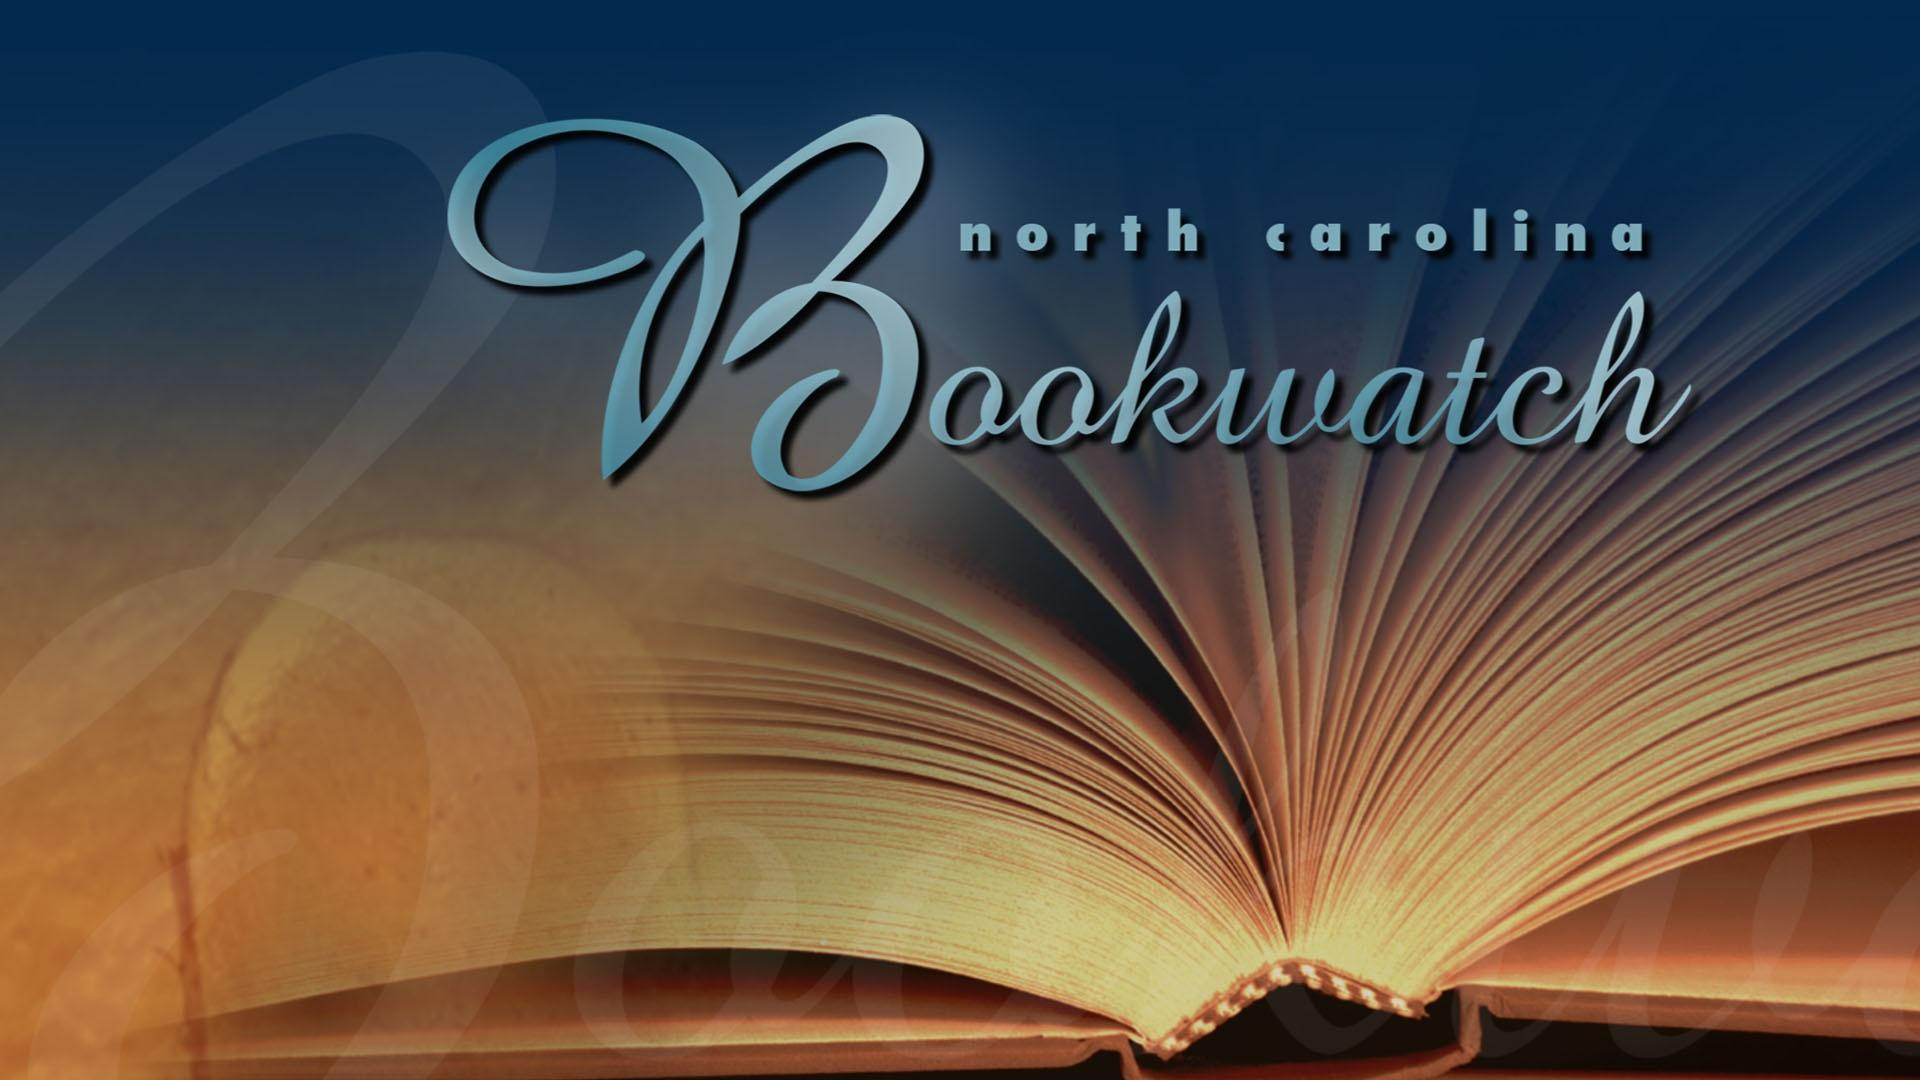 North Carolina Bookwatch